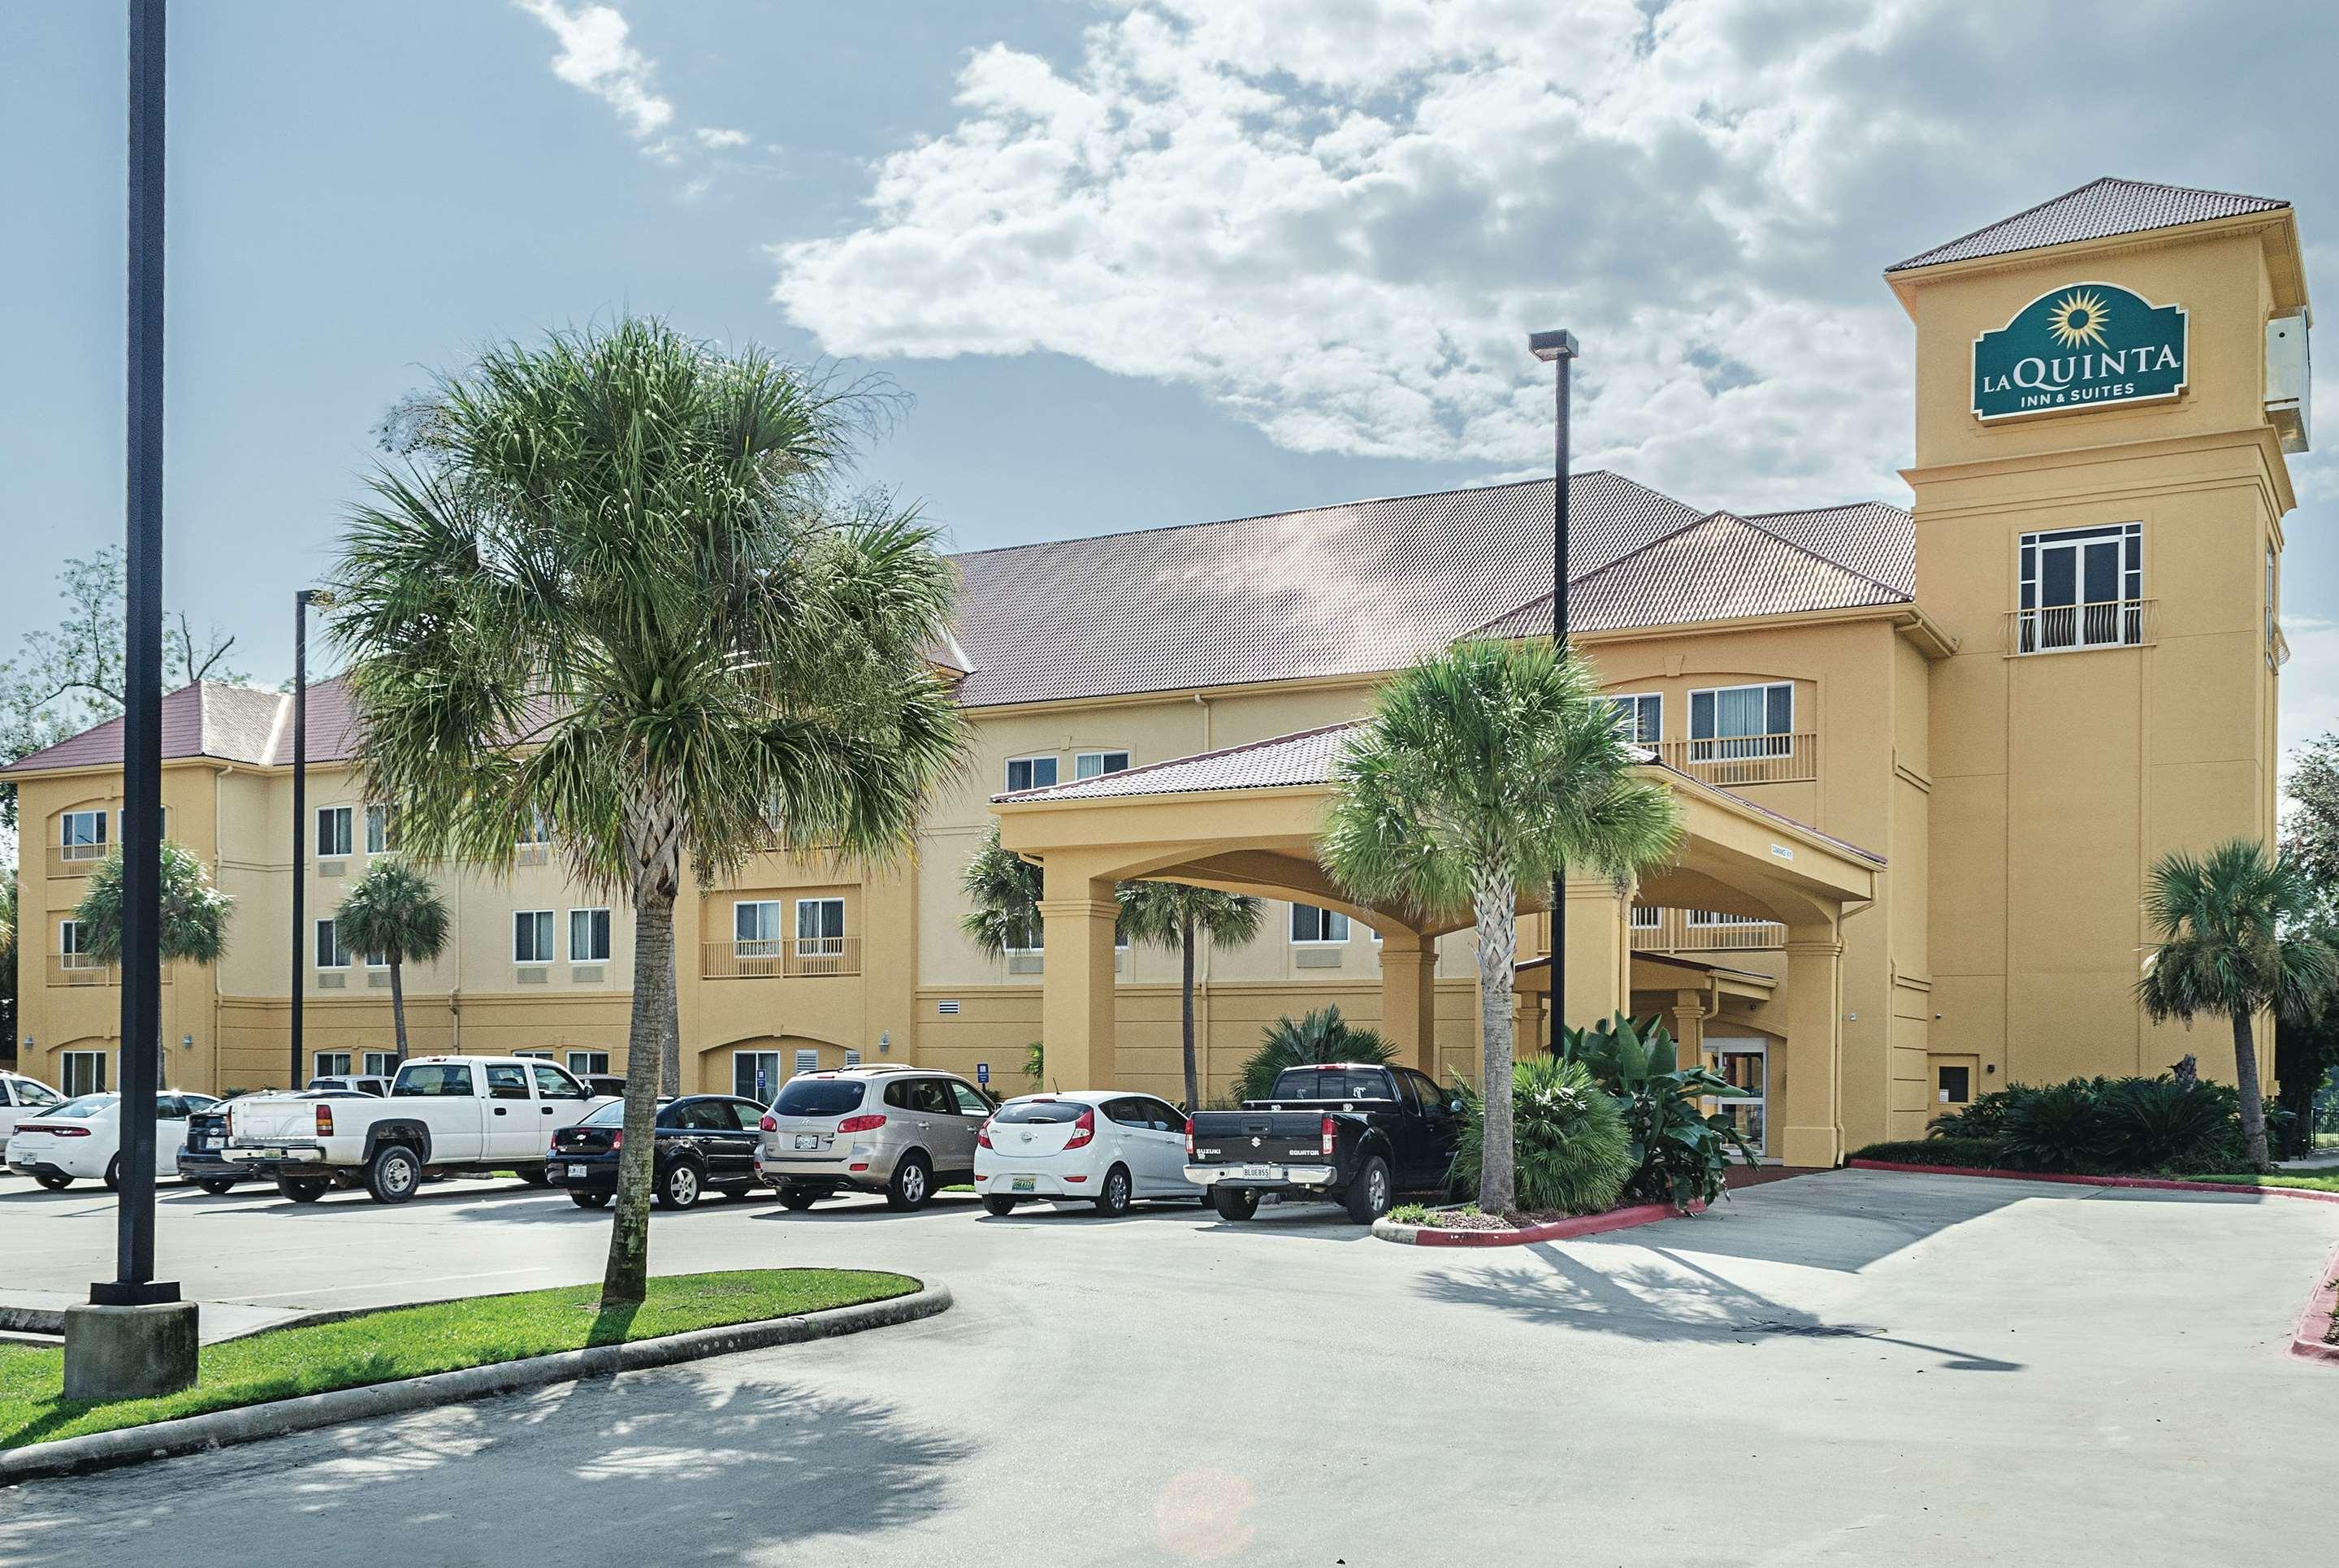 La Quinta Inn & Suites by Wyndham Biloxi